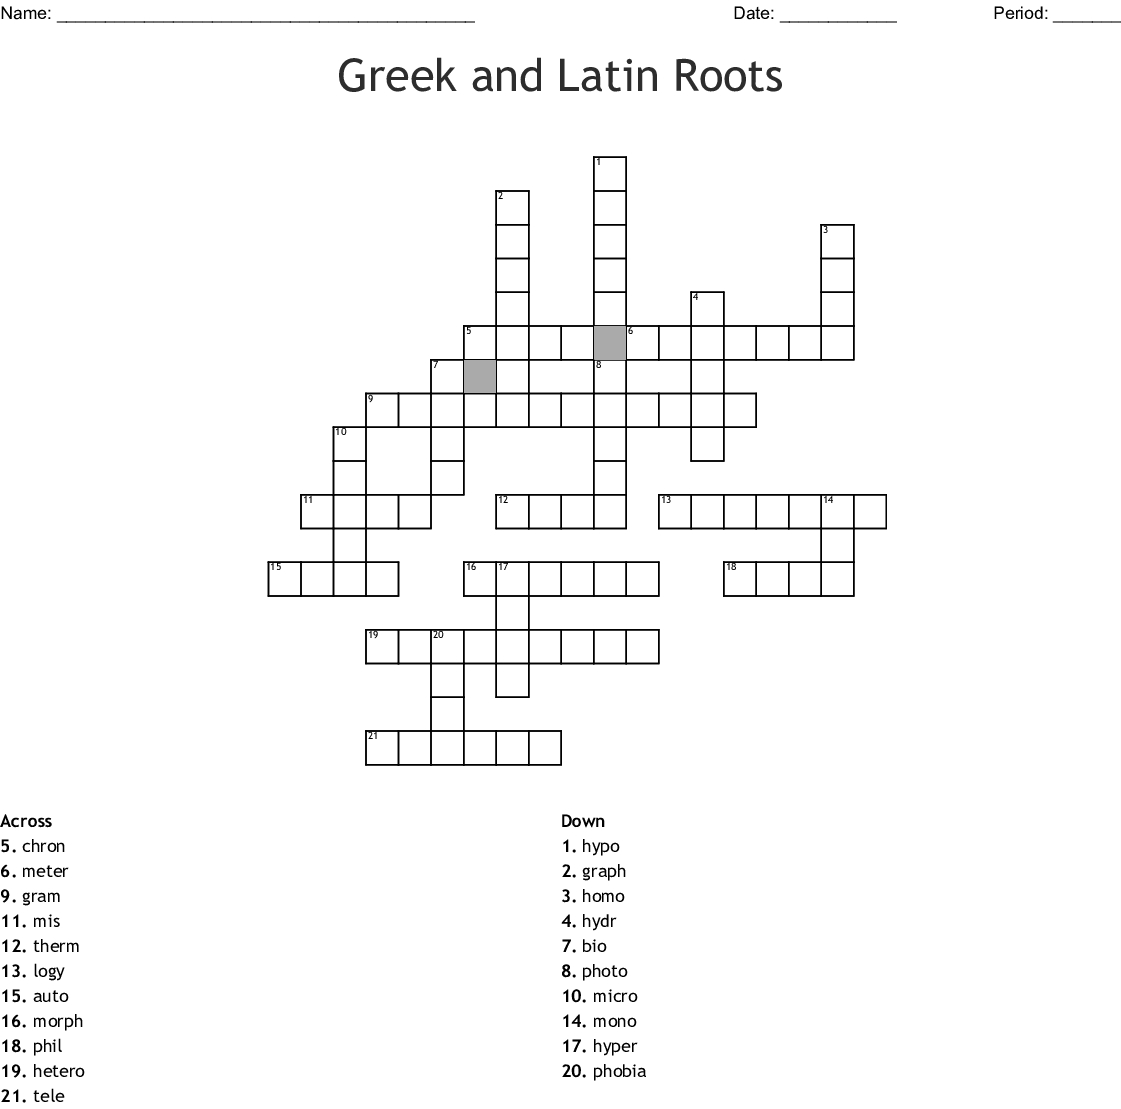 Free Printable Greek And Latin Roots